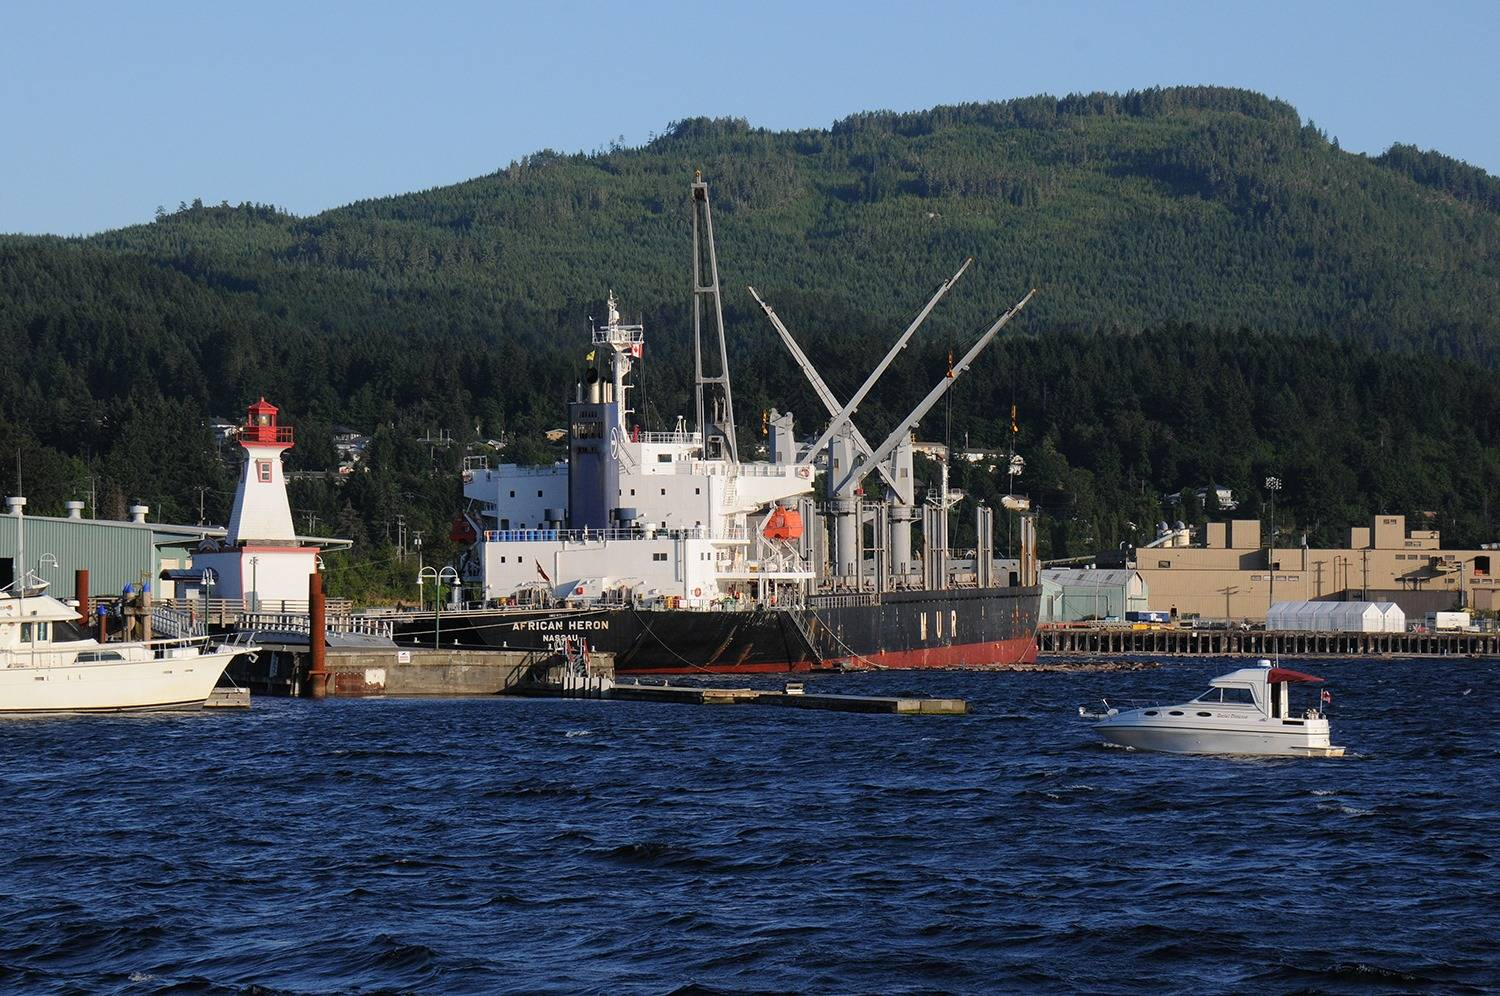 Port Alberni's deepsea harbour was a busy place for a Tuesday evening in mid-July 2020. (SUSAN QUINN/ Alberni Valley News)